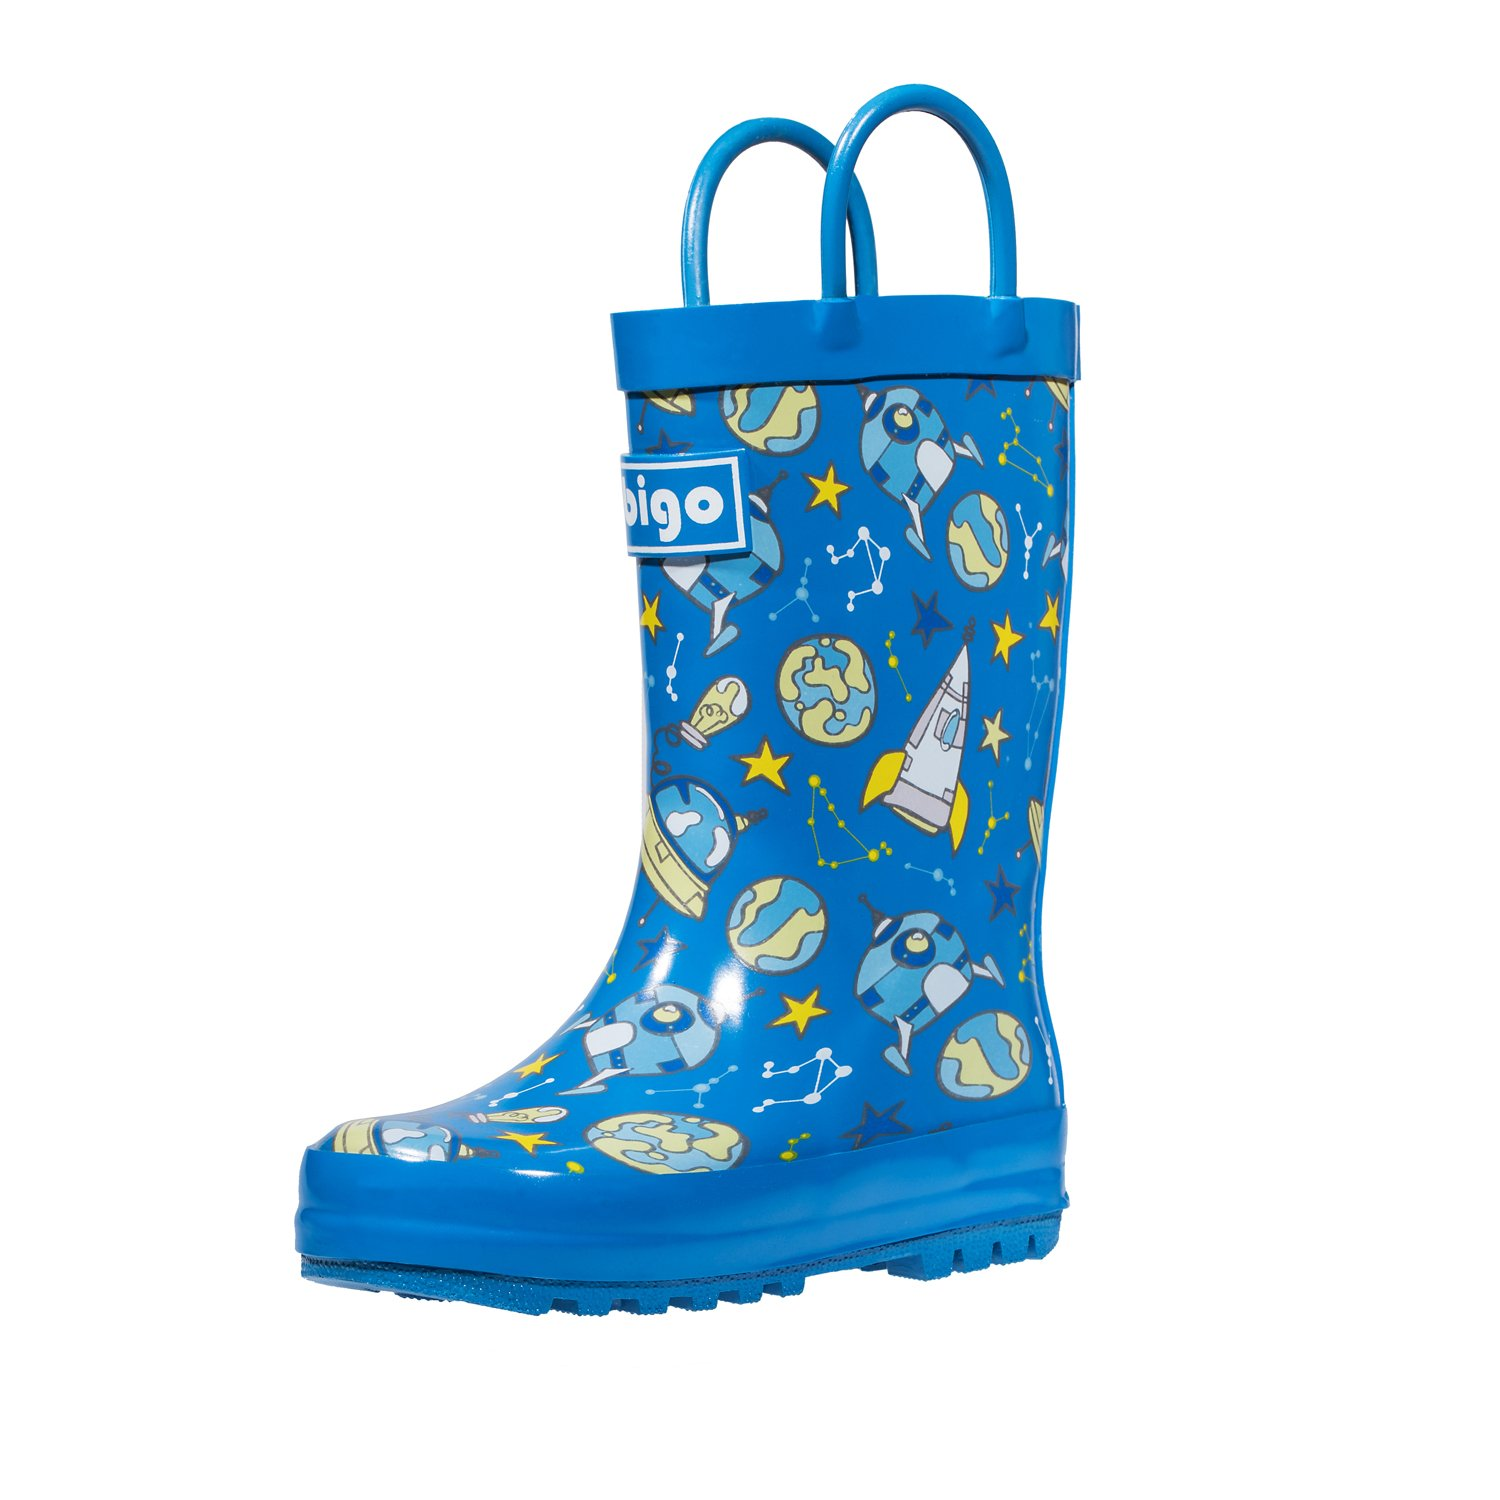 hibigo Children's Natural Rubber Rain Boots with Handles Easy for Little Kids & Toddler Boys, Pattern